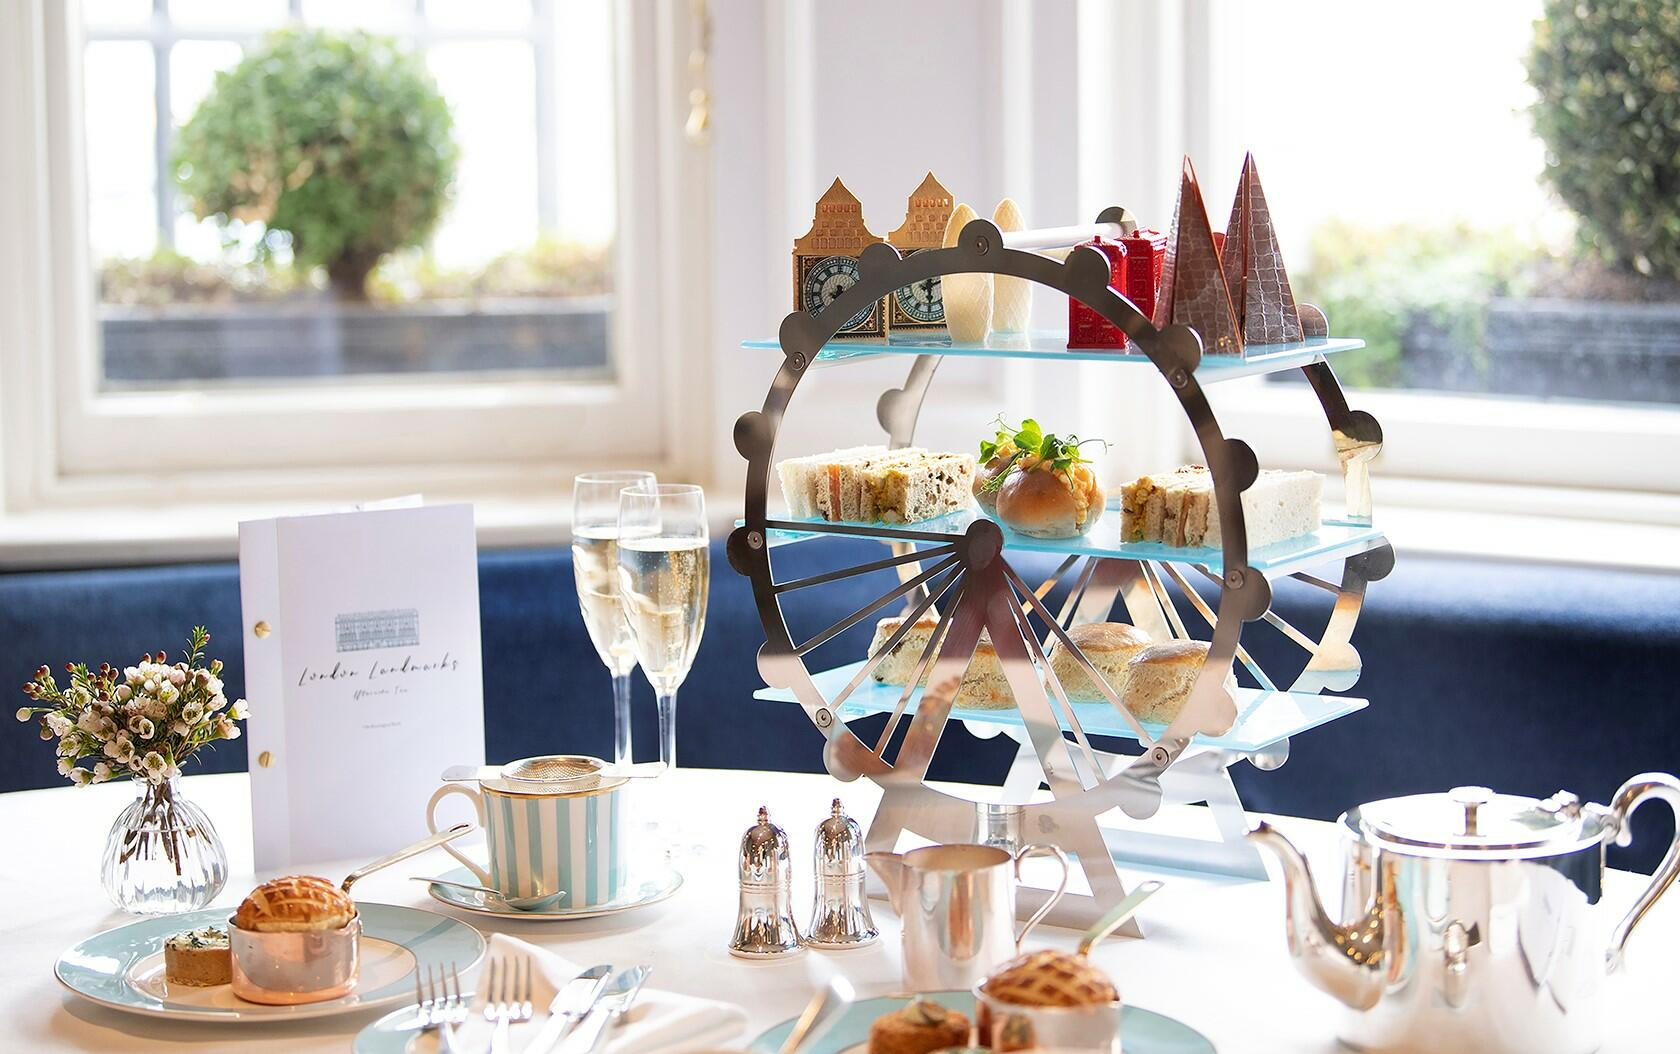 afternoon tea depicting famous landmarks served in Town House